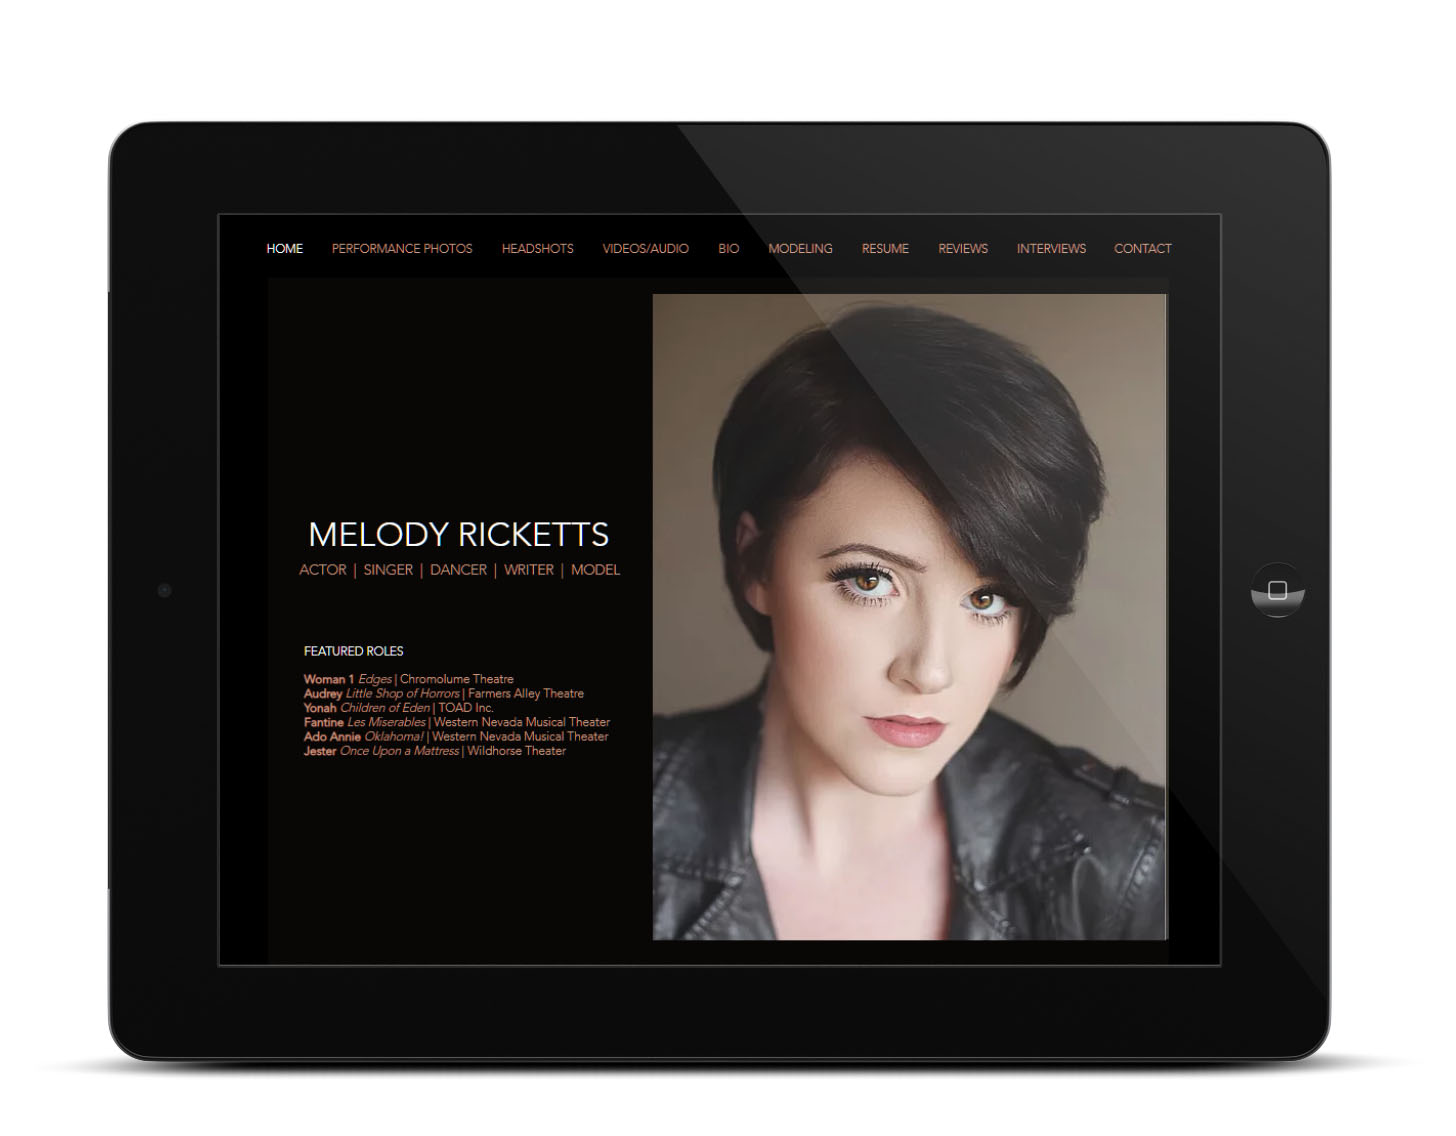 Melody Ricketts Web Site